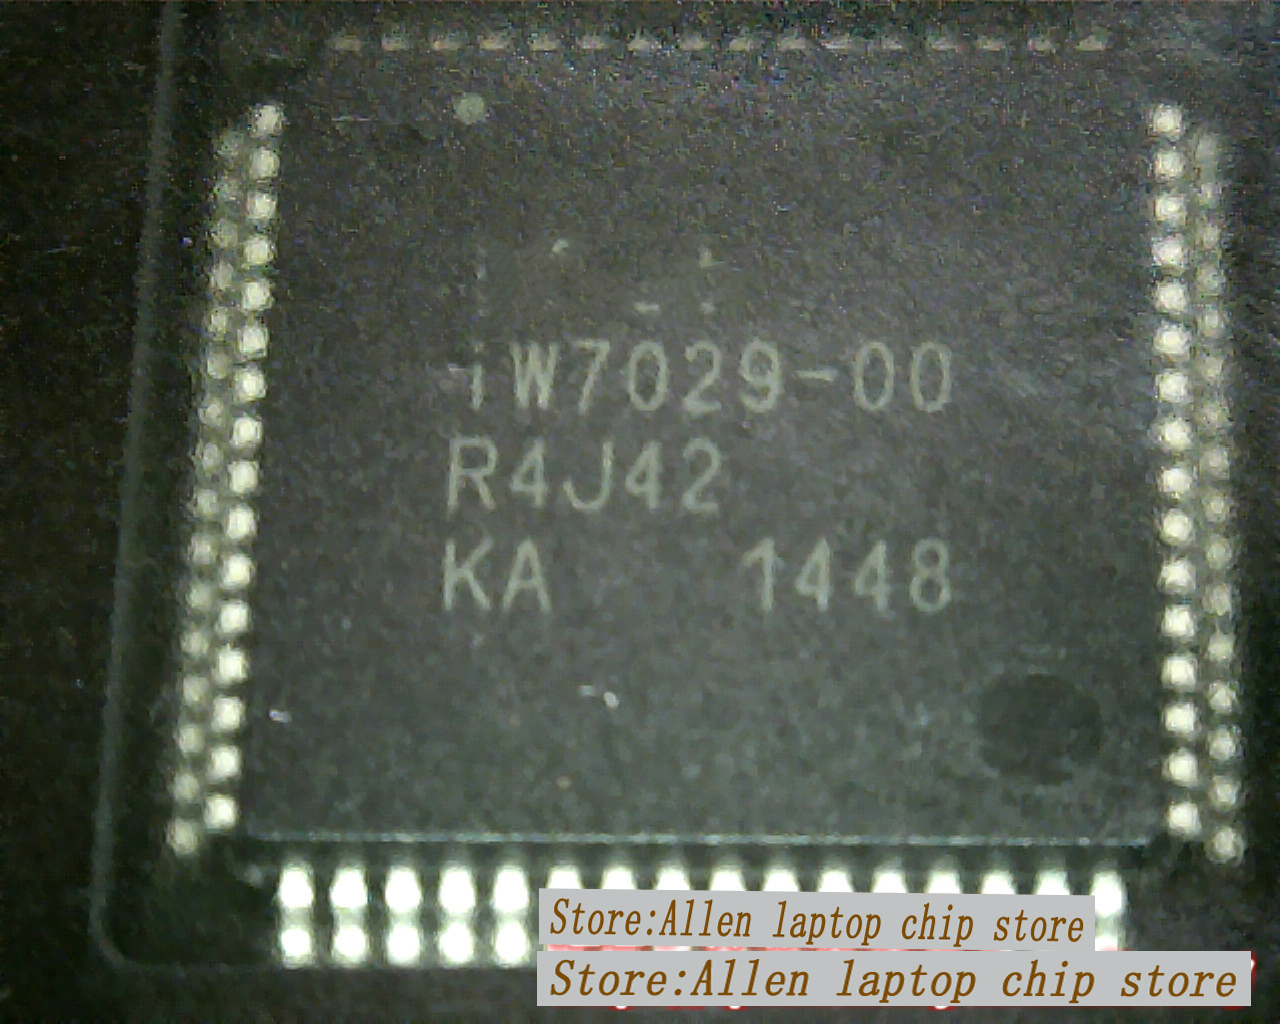 Free shipping 2pcs/lot IW7029-00 1W7029-00 IW7029 Computer chip new original